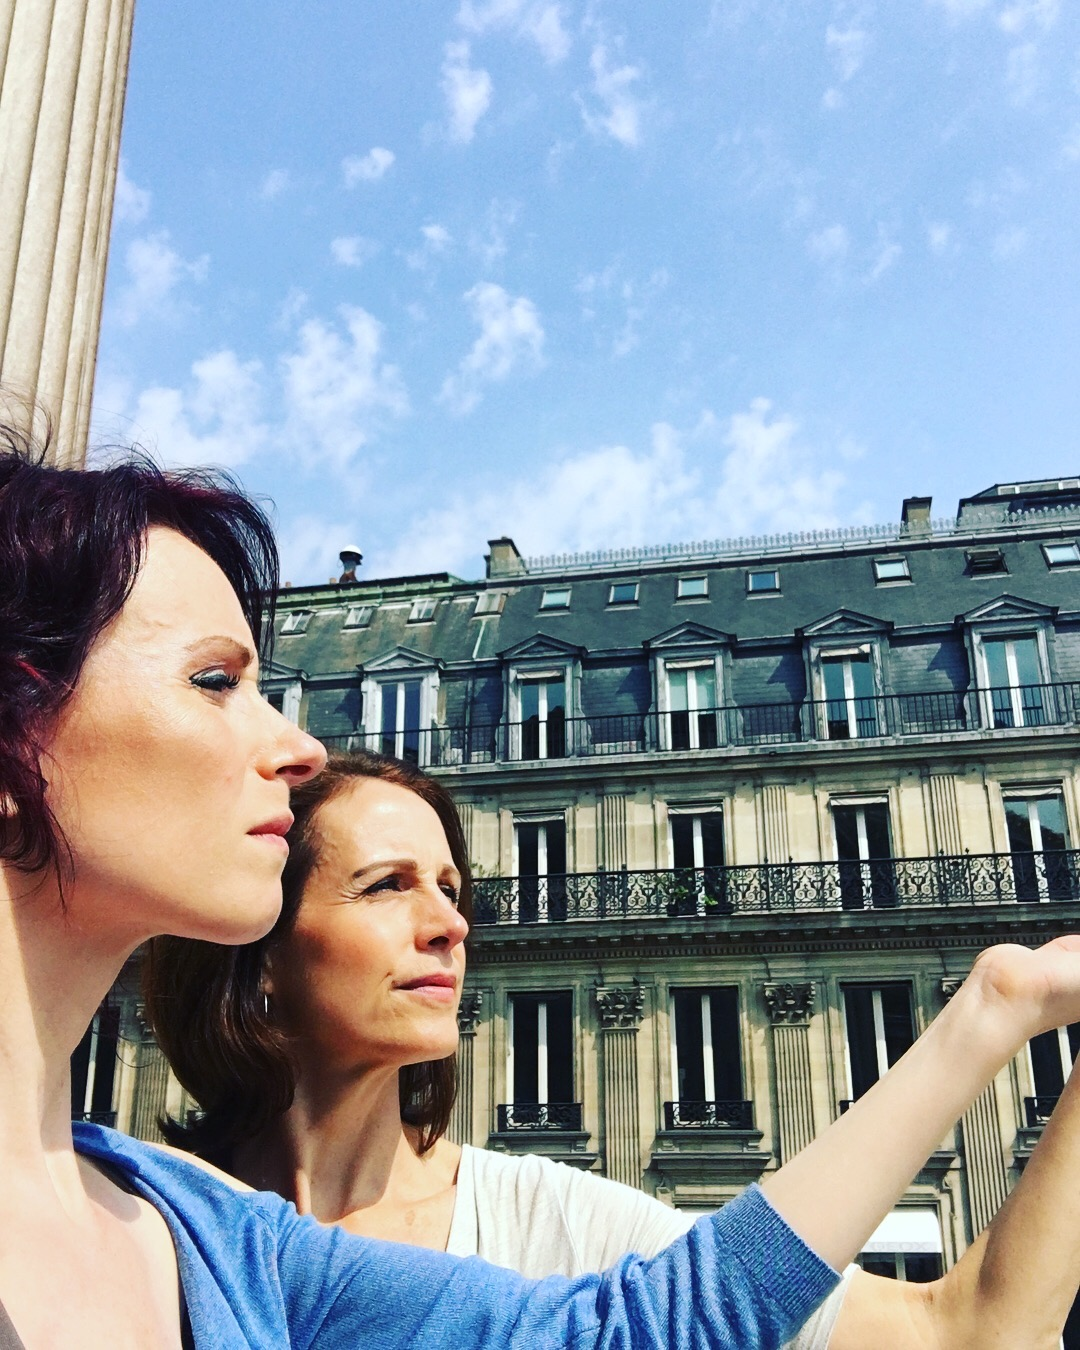 Looking out over our royal subjects